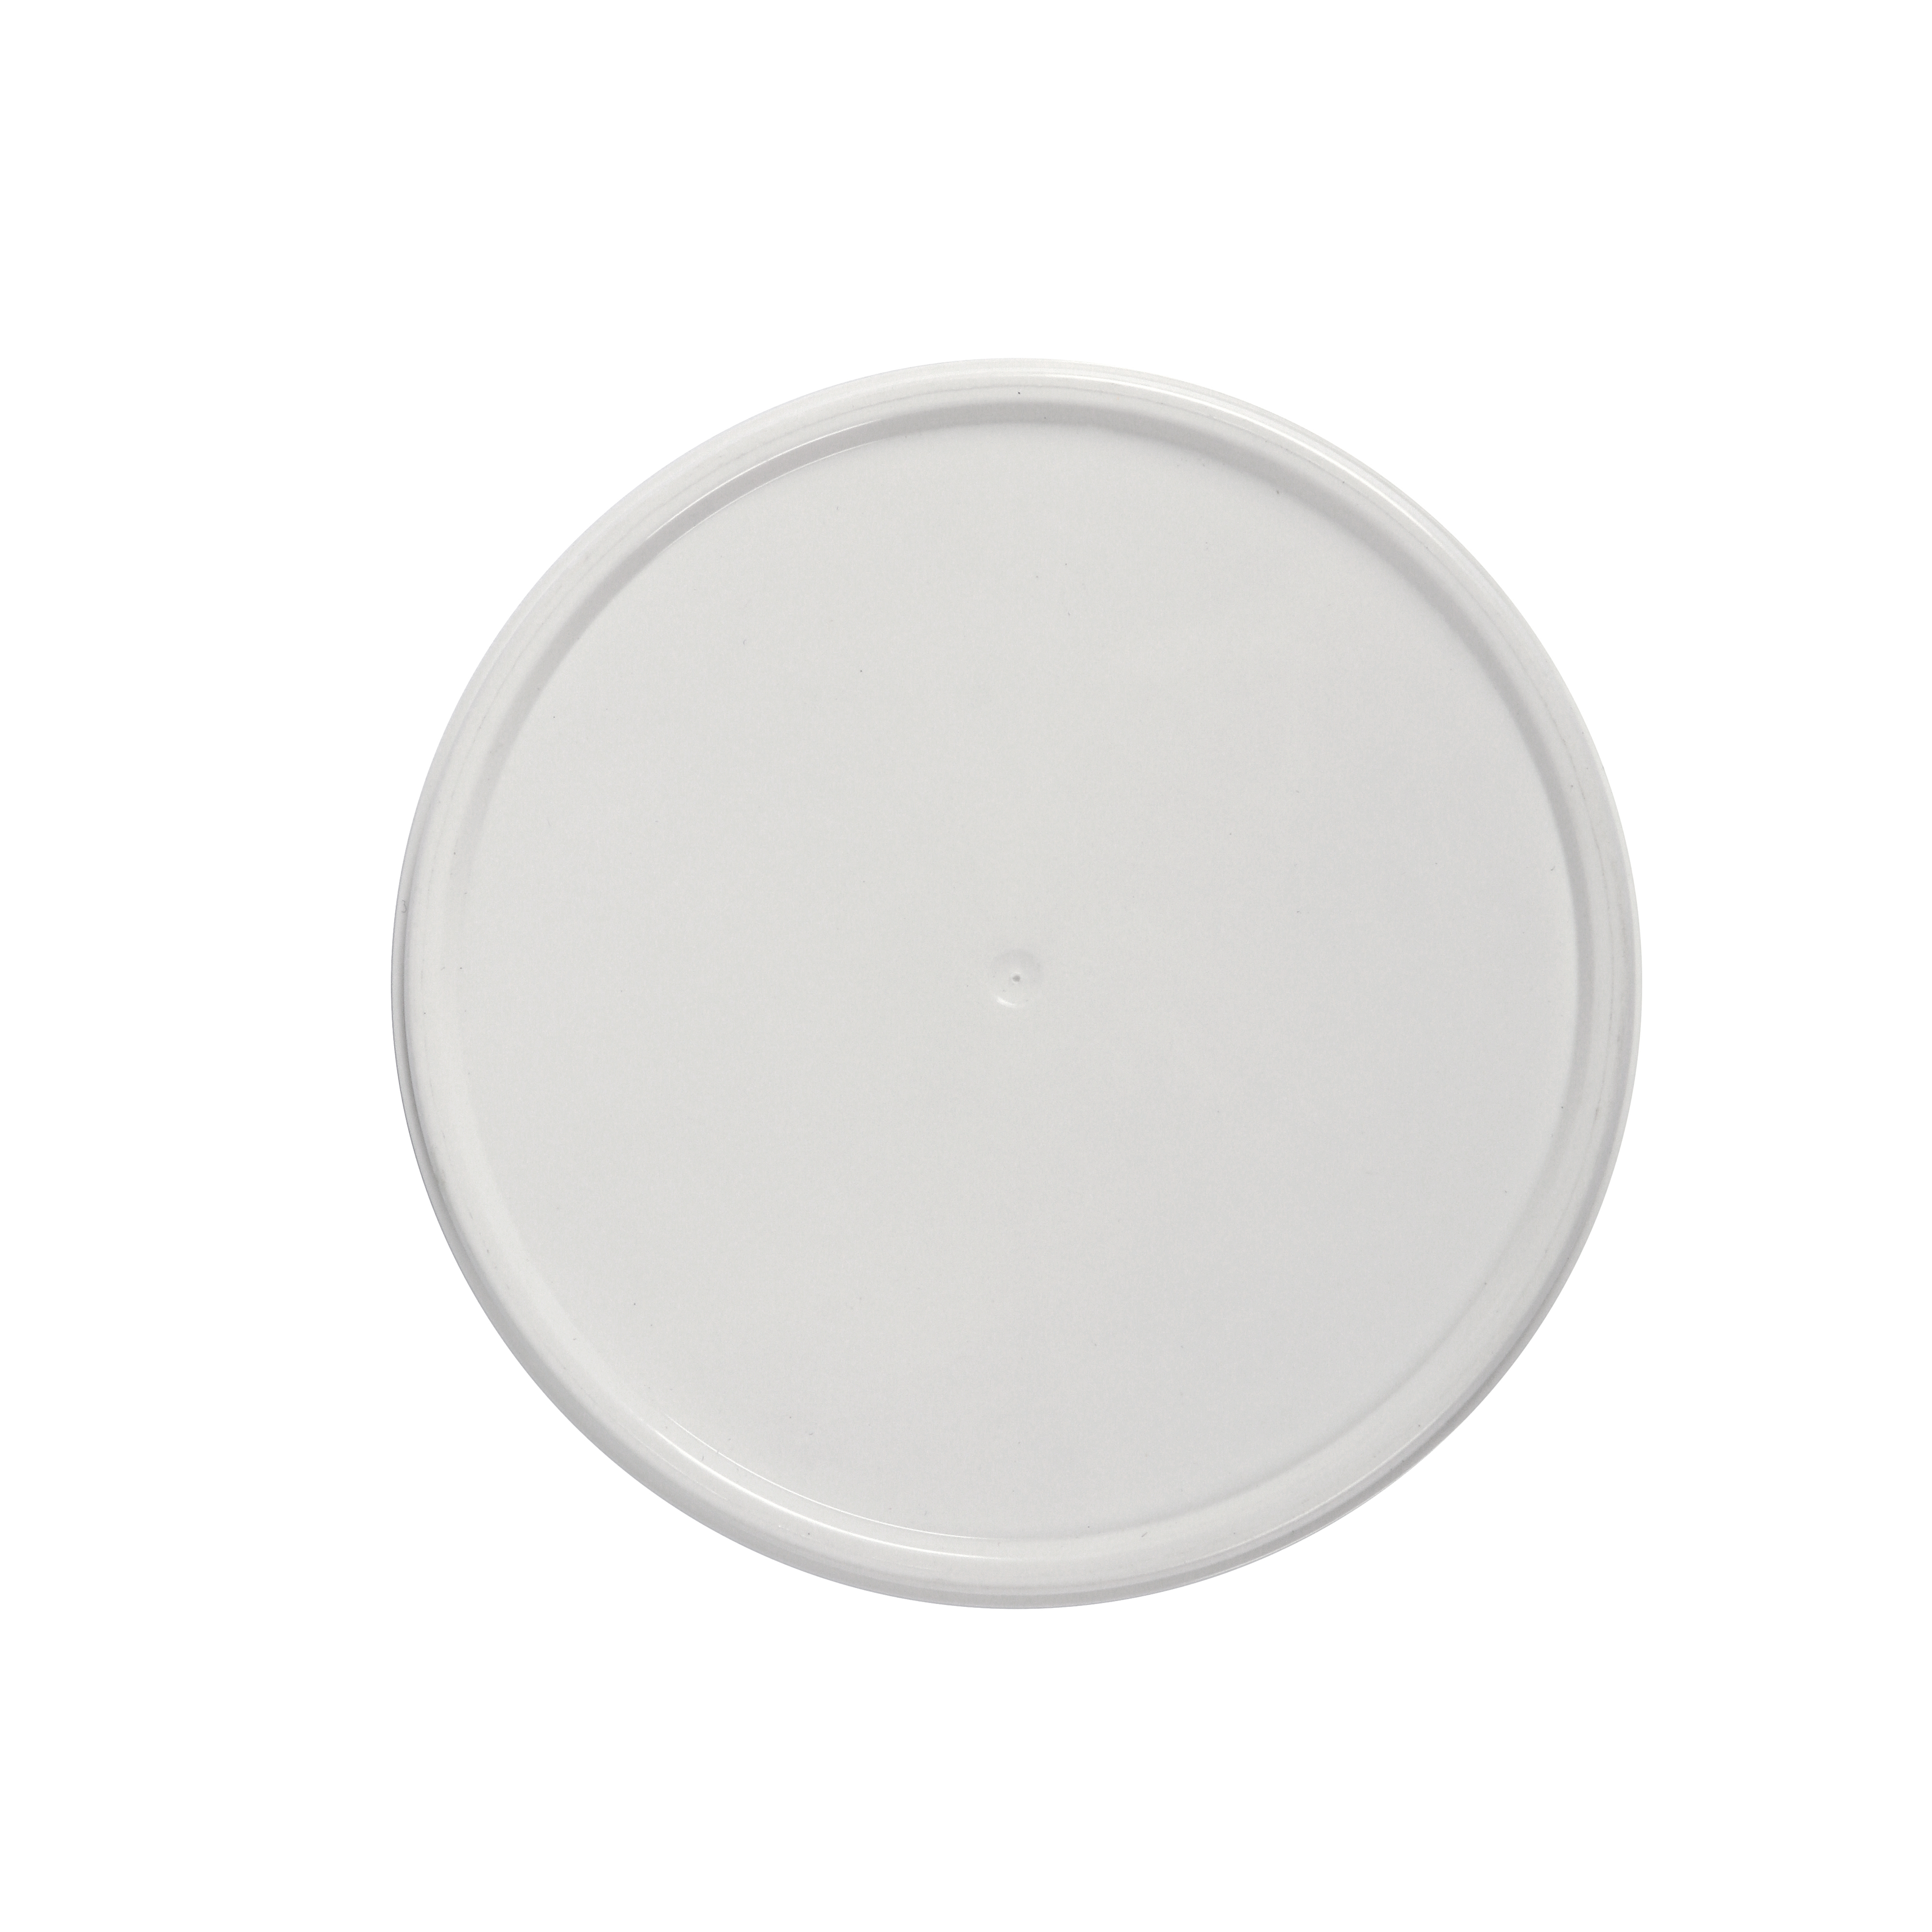 Plastic lid for cardboard cup - 110 mm diameter. Lid  for big buckets of ice cream